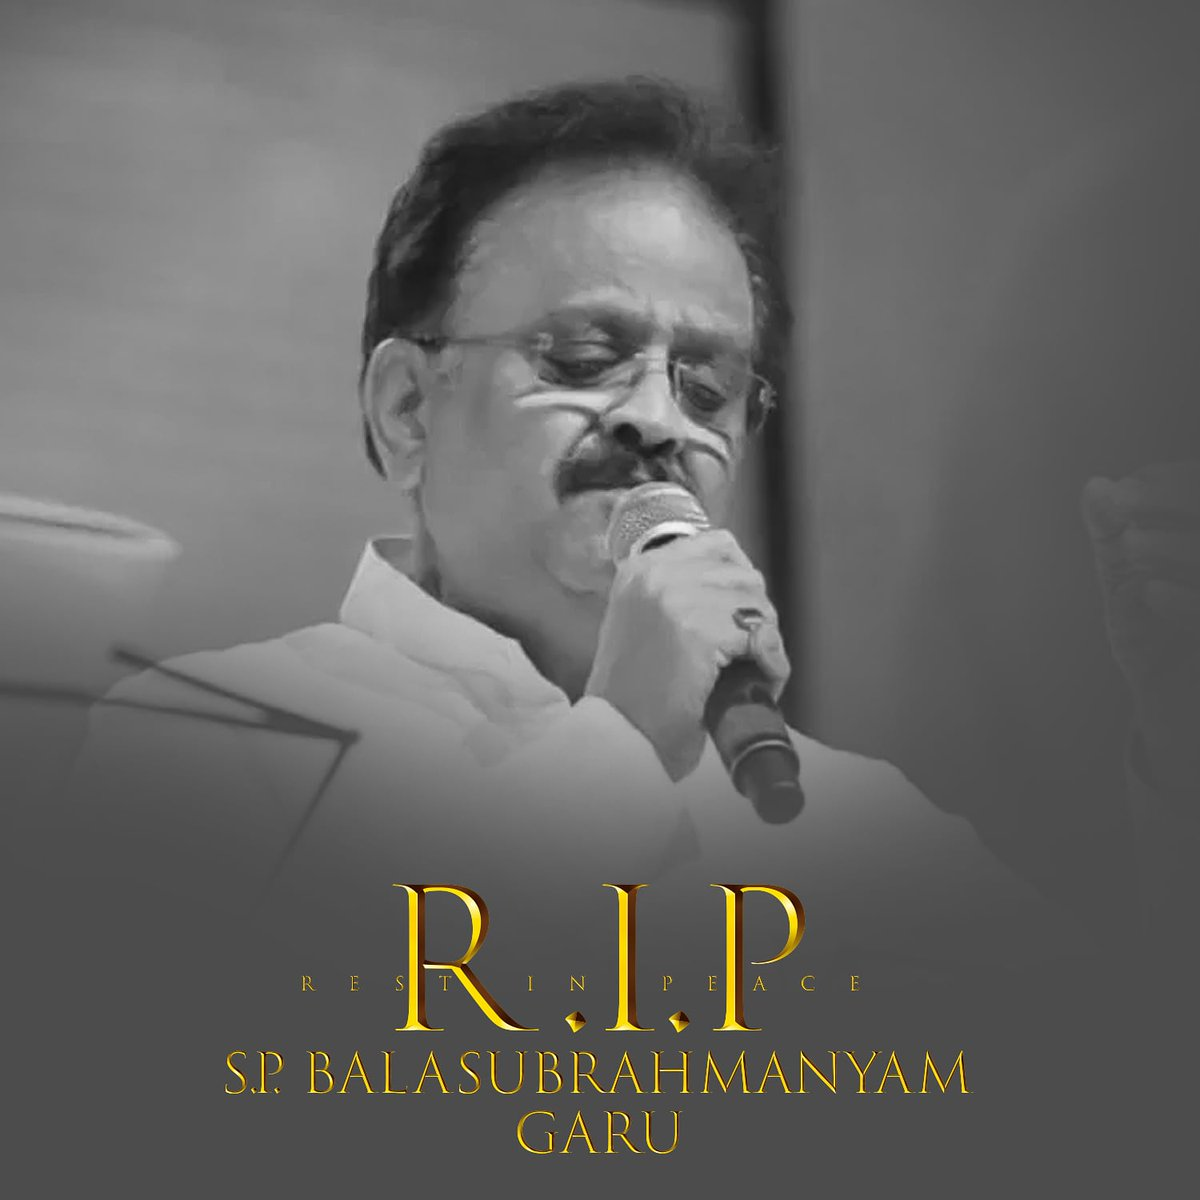 Saddened to hear about demise of Shri SP Balasubrahmanyam garu. India has lost one of its most legendary voices. Condolences to the family, loved ones & millions of fans world over.  #RIPSPB #SPBalasubrahmanyam https://t.co/jfnr0YogC8